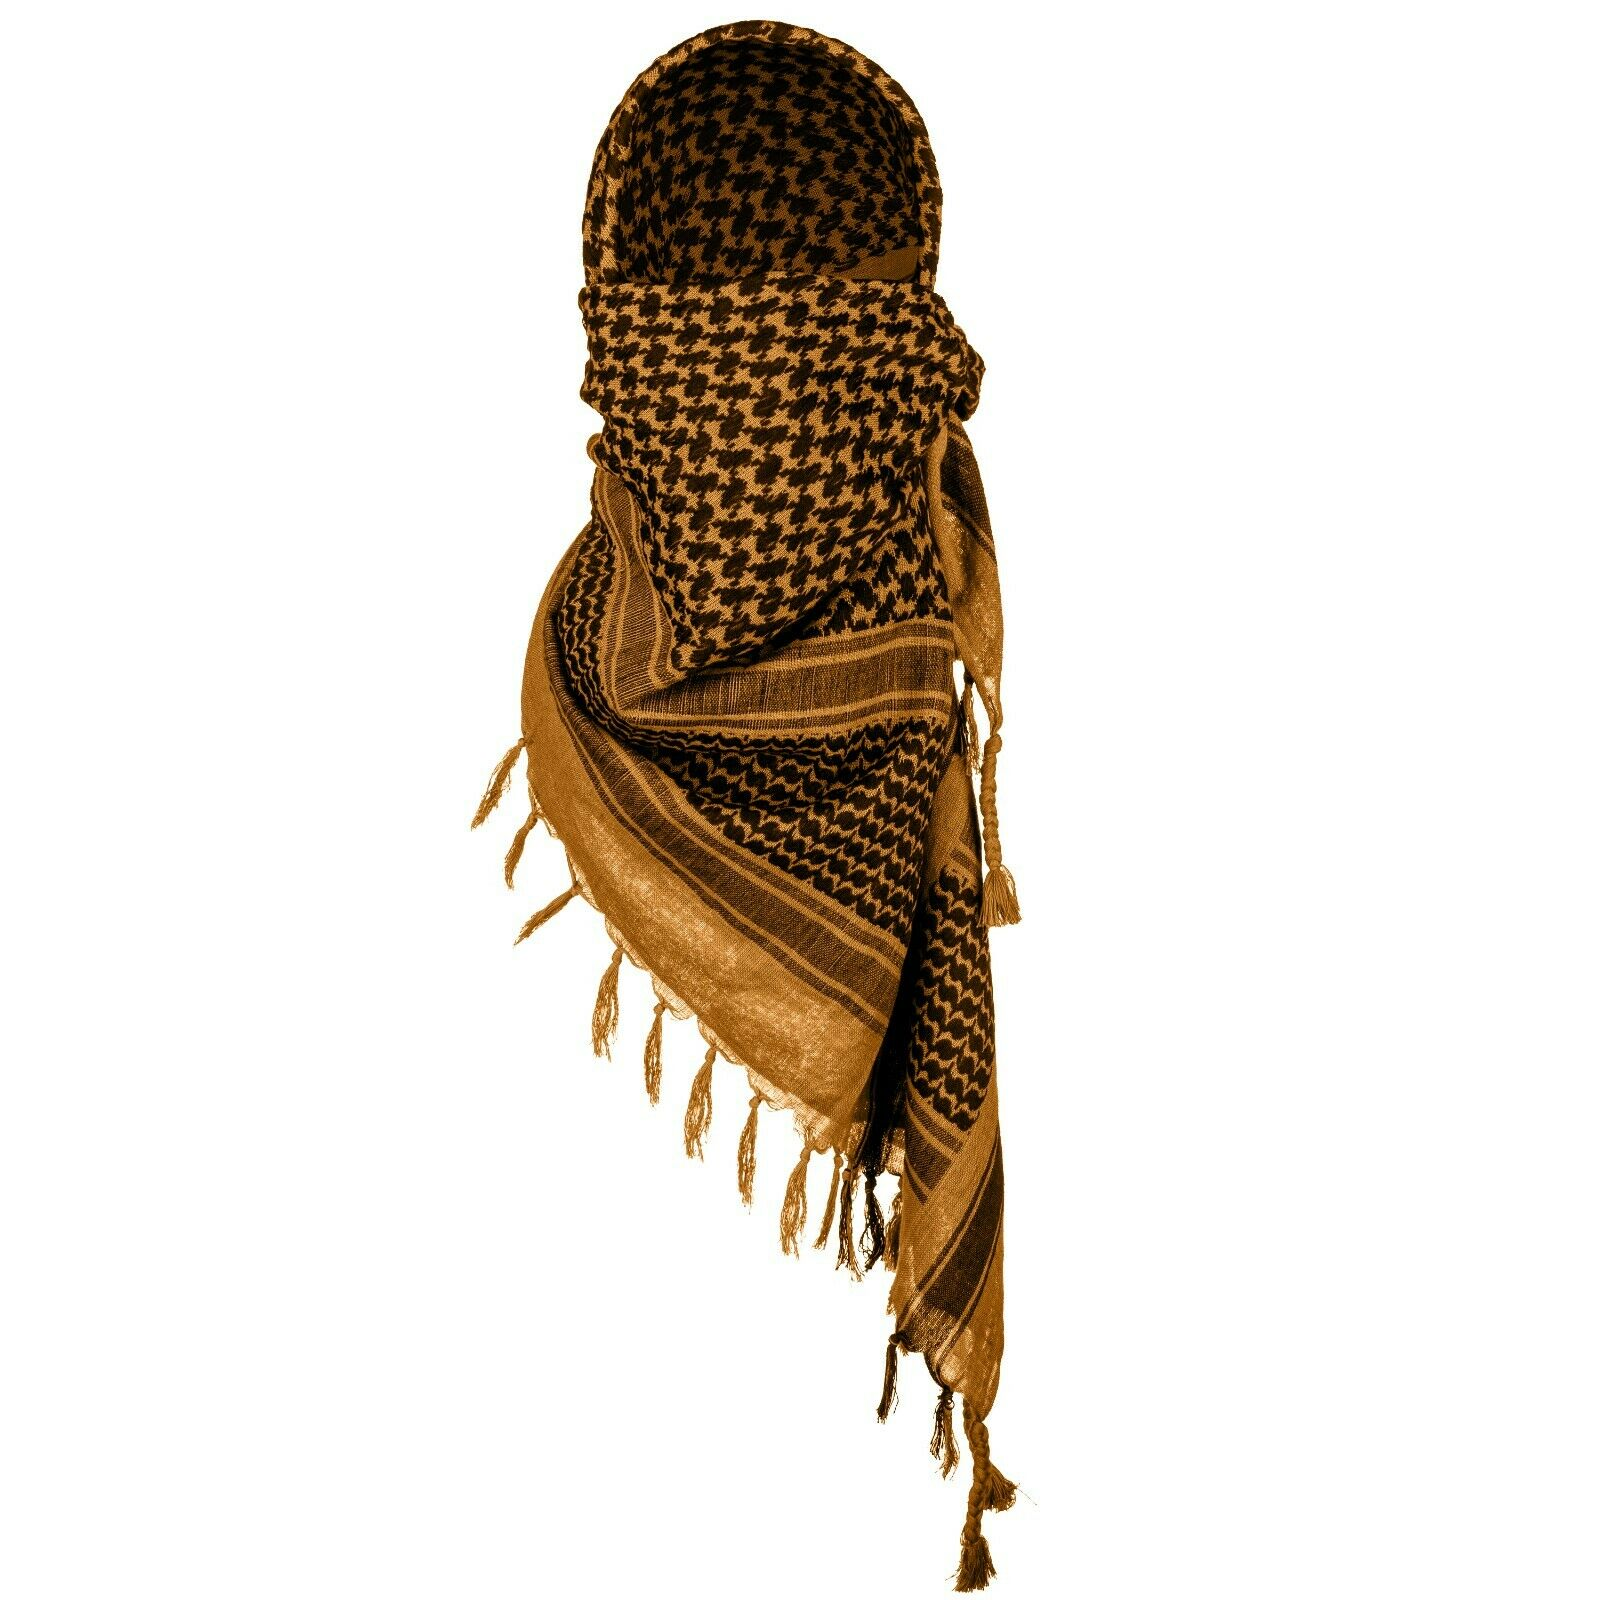 Mora Premium Shemagh Scarf Large 100/% Cotton Arab Tactical Military Desert Head Neck Keffiyeh Wrap with Tassels